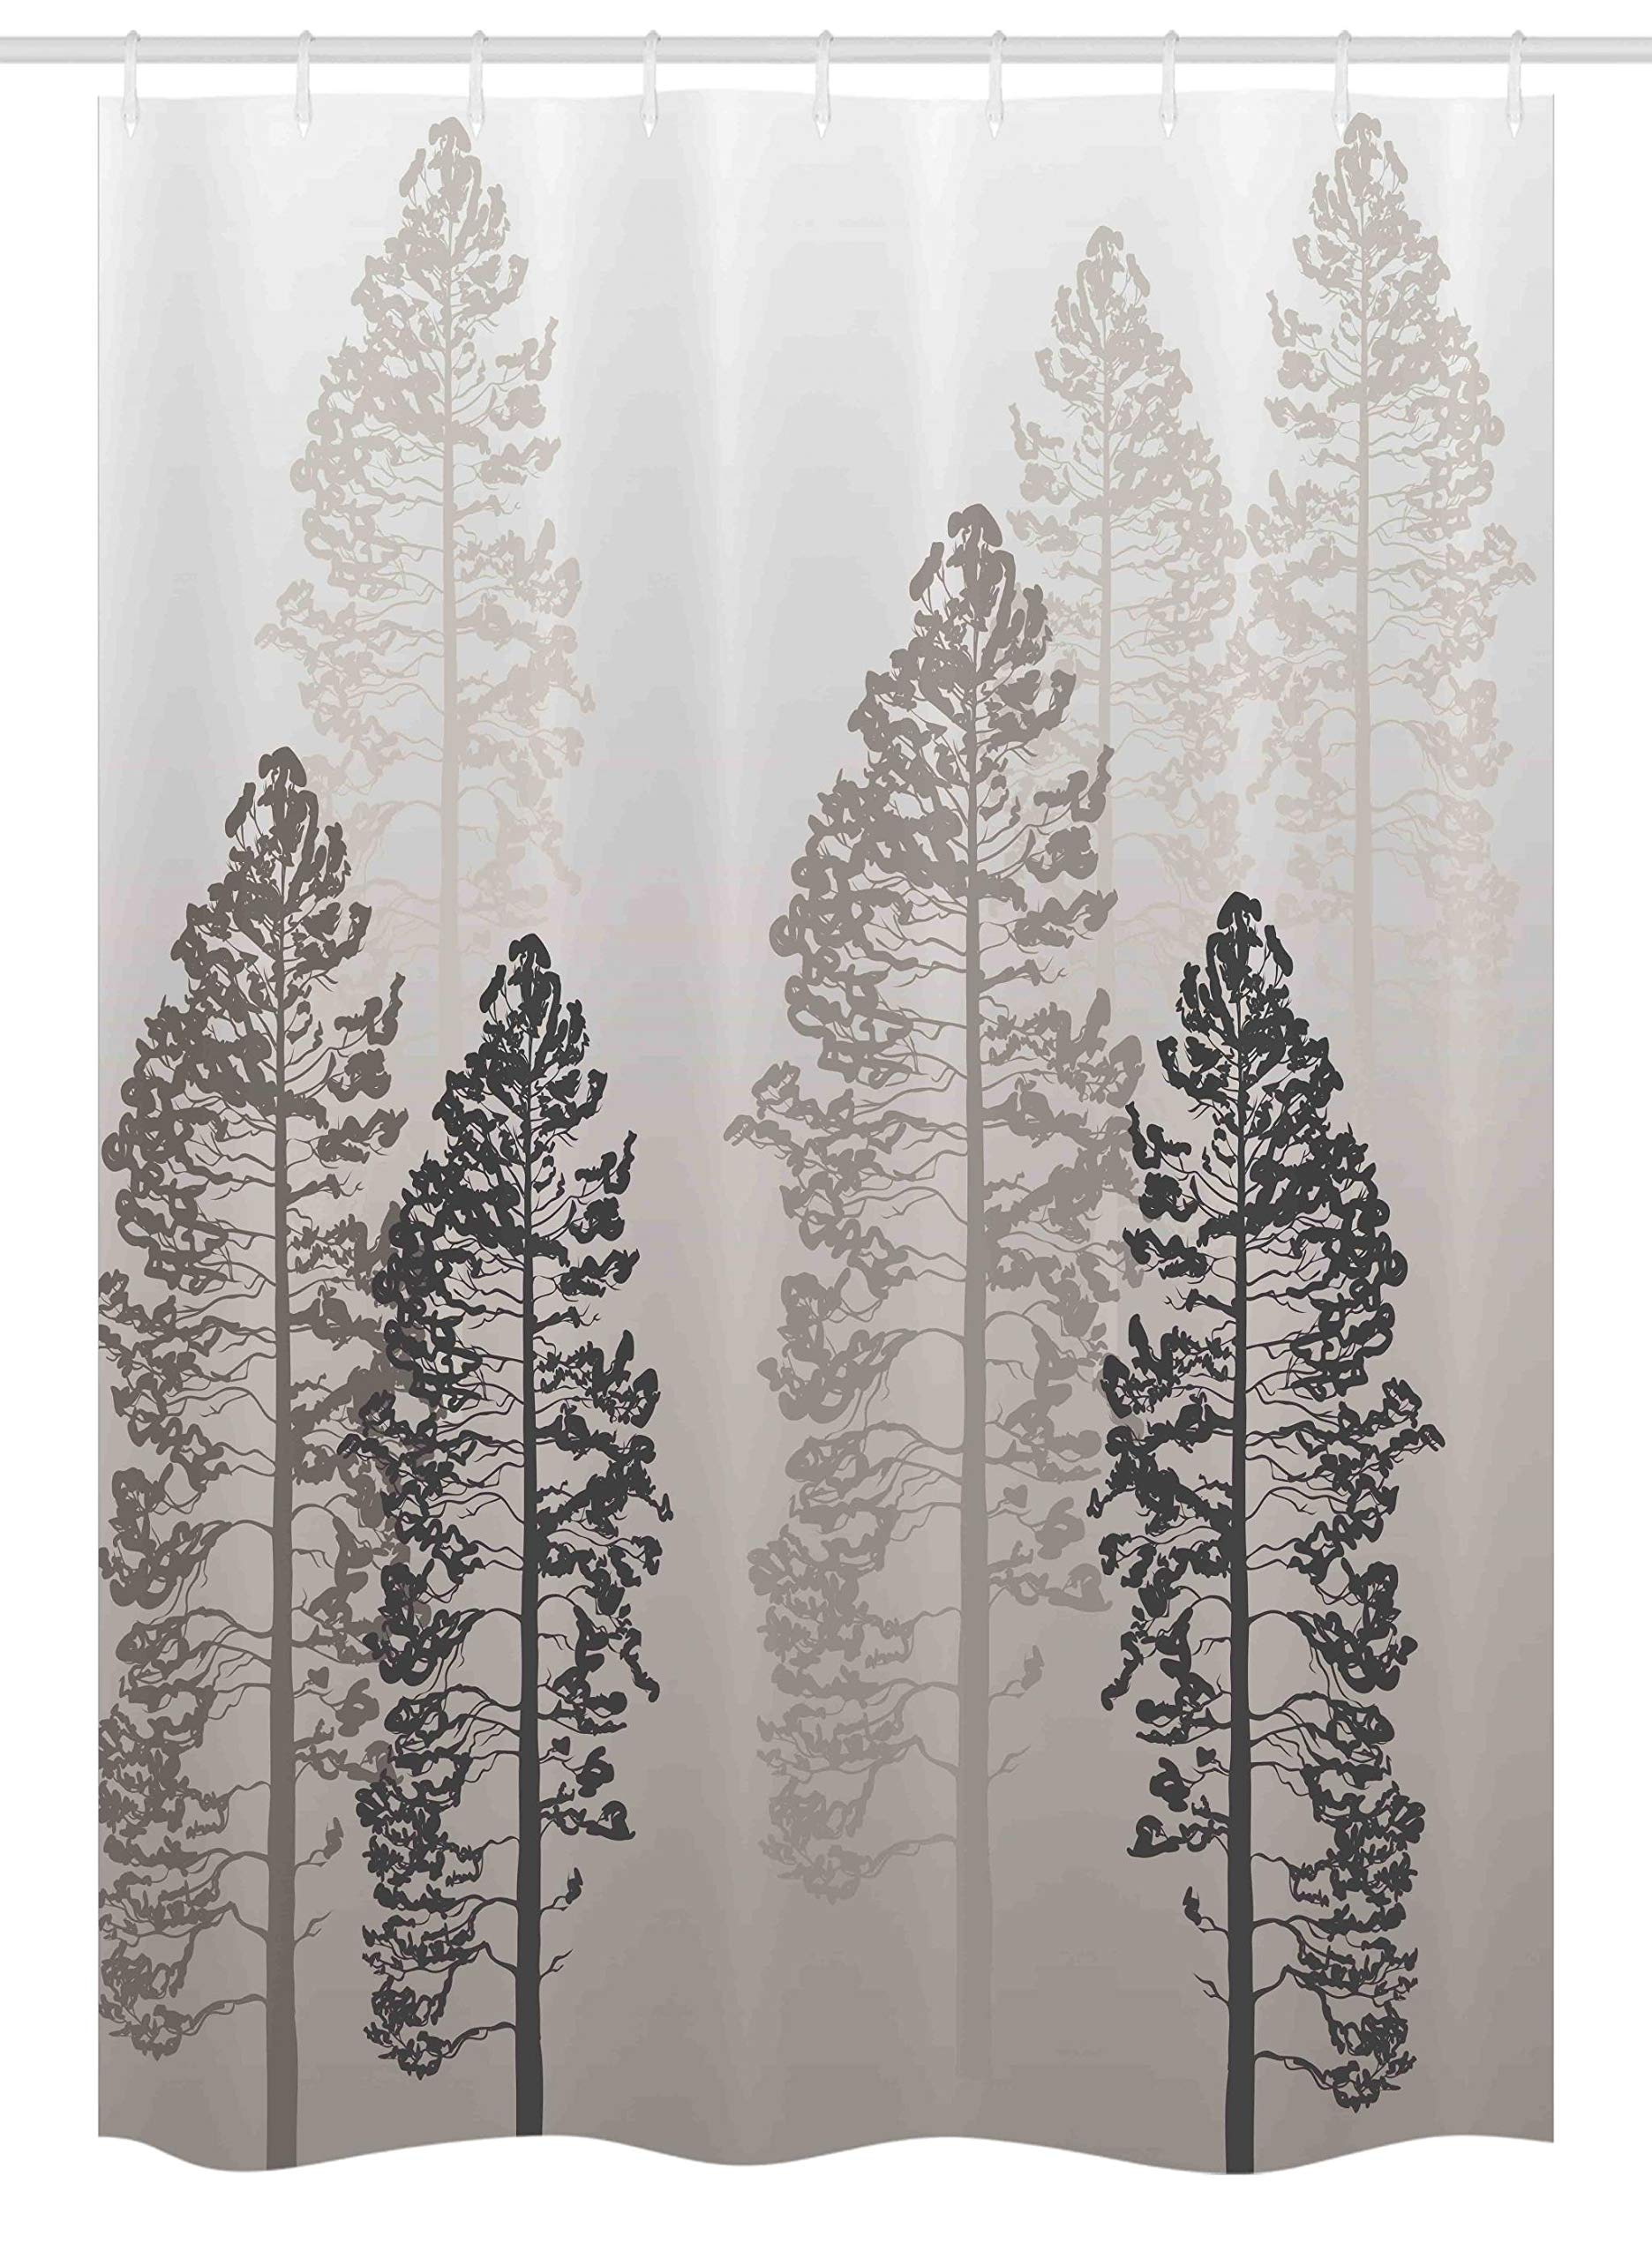 Ambesonne Country Stall Shower Curtain, Pine Trees in The Forest on Foggy Seem Ombre Backdrop Wildlife Adventure Artwork, Fabric Bathroom Decor Set with Hooks, 54'' X 78'', Light Yellow